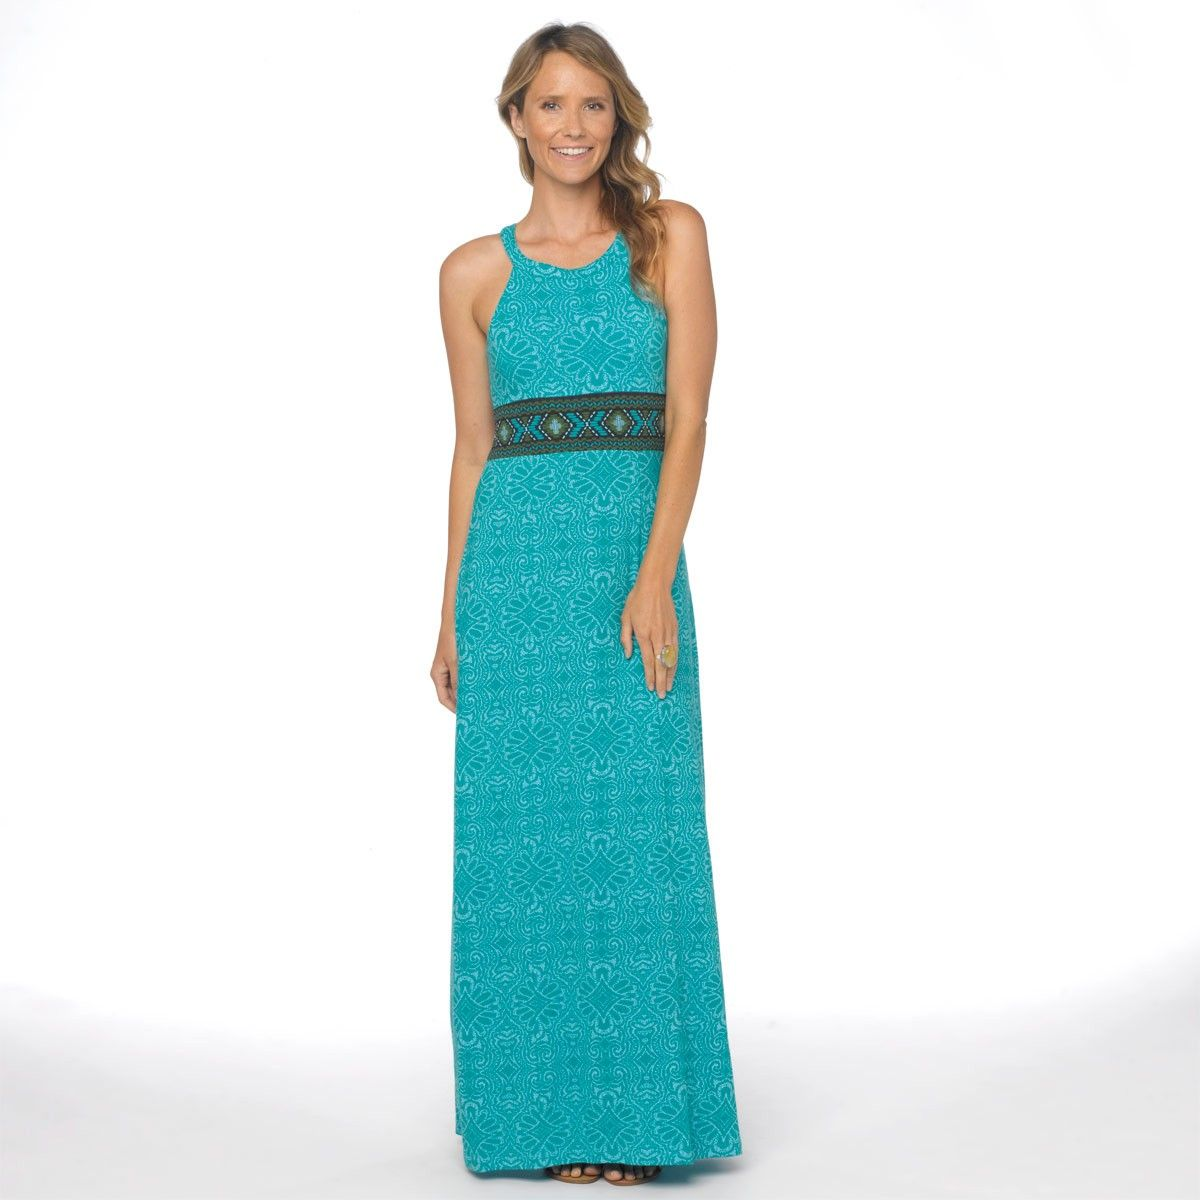 Skye dress fair trade maxi styles and lovely dresses